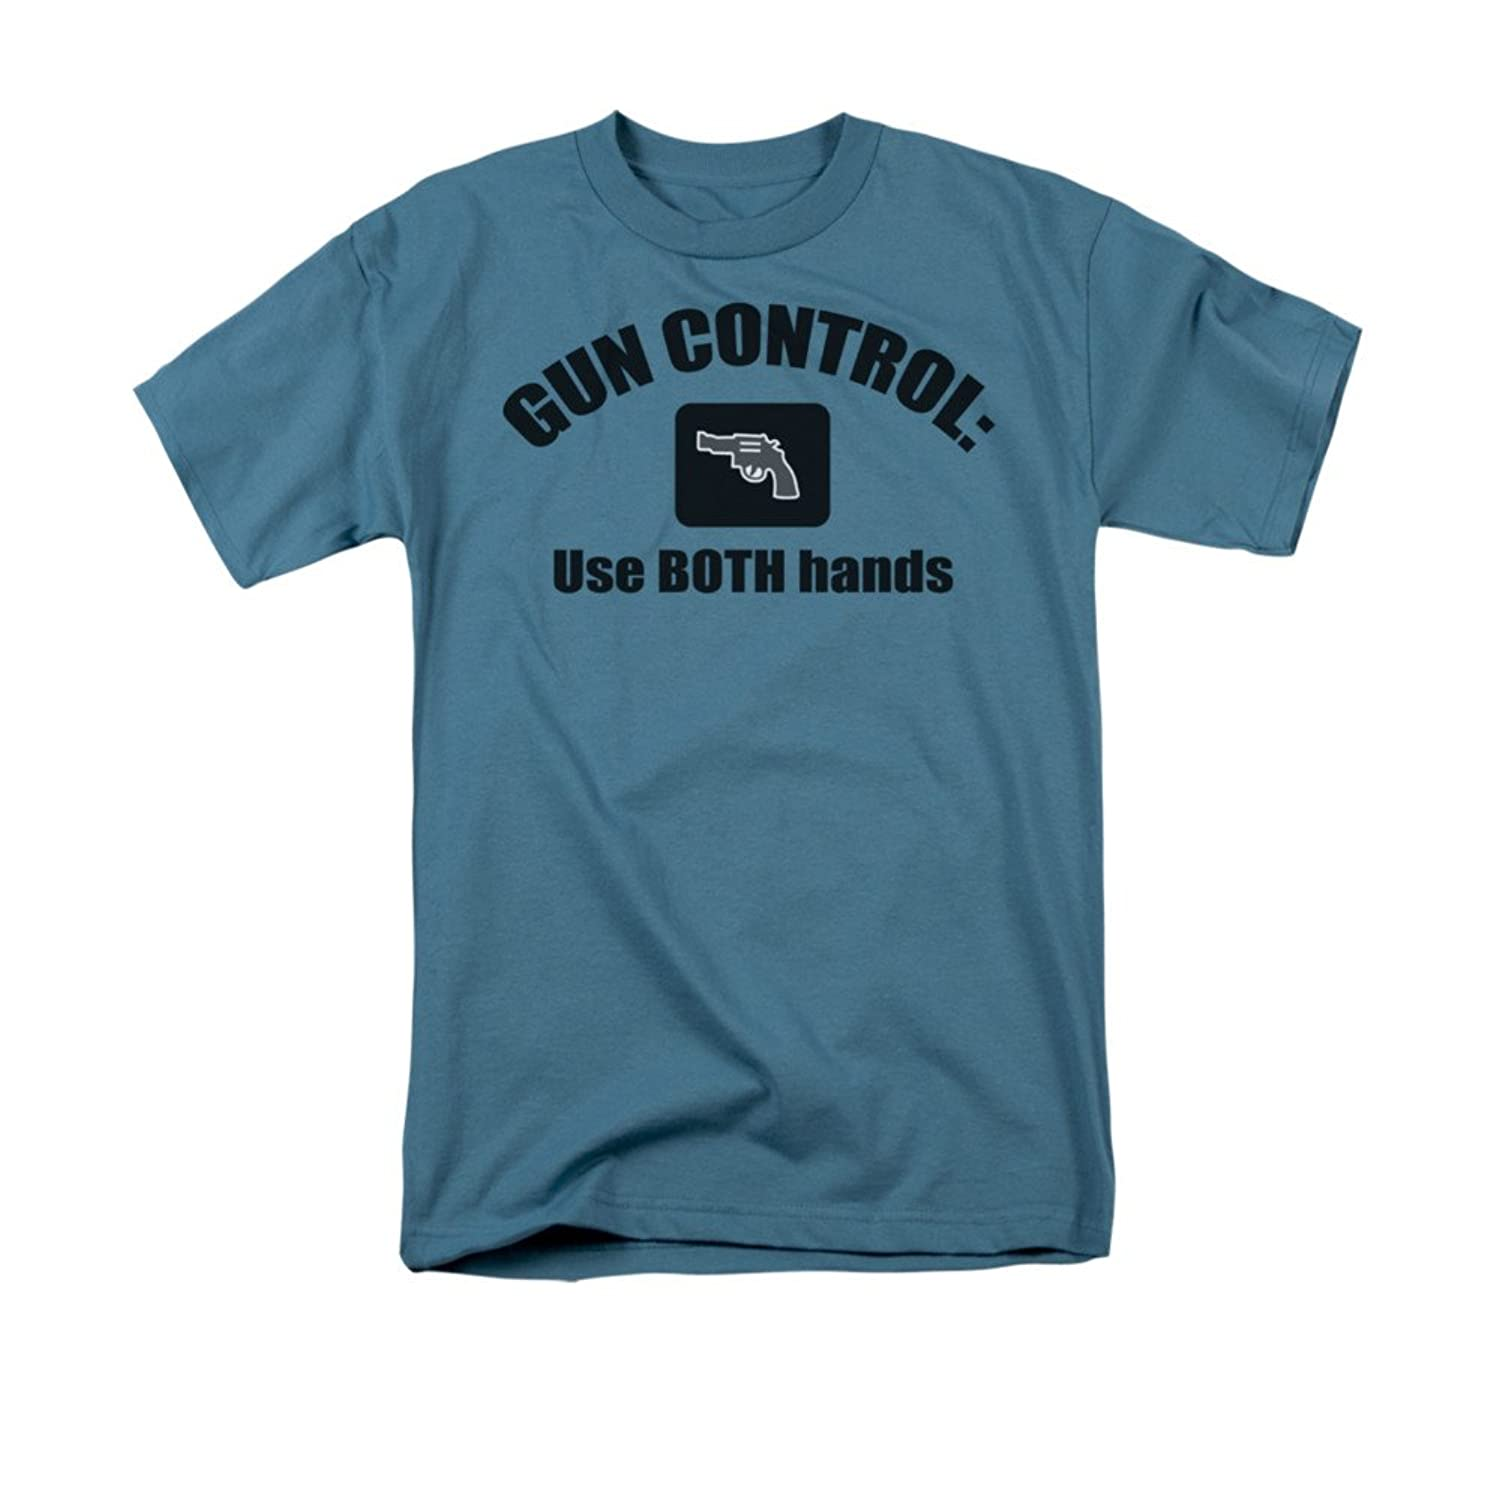 Gun Control: Use Both Hands Funny Saying Adult T-Shirt